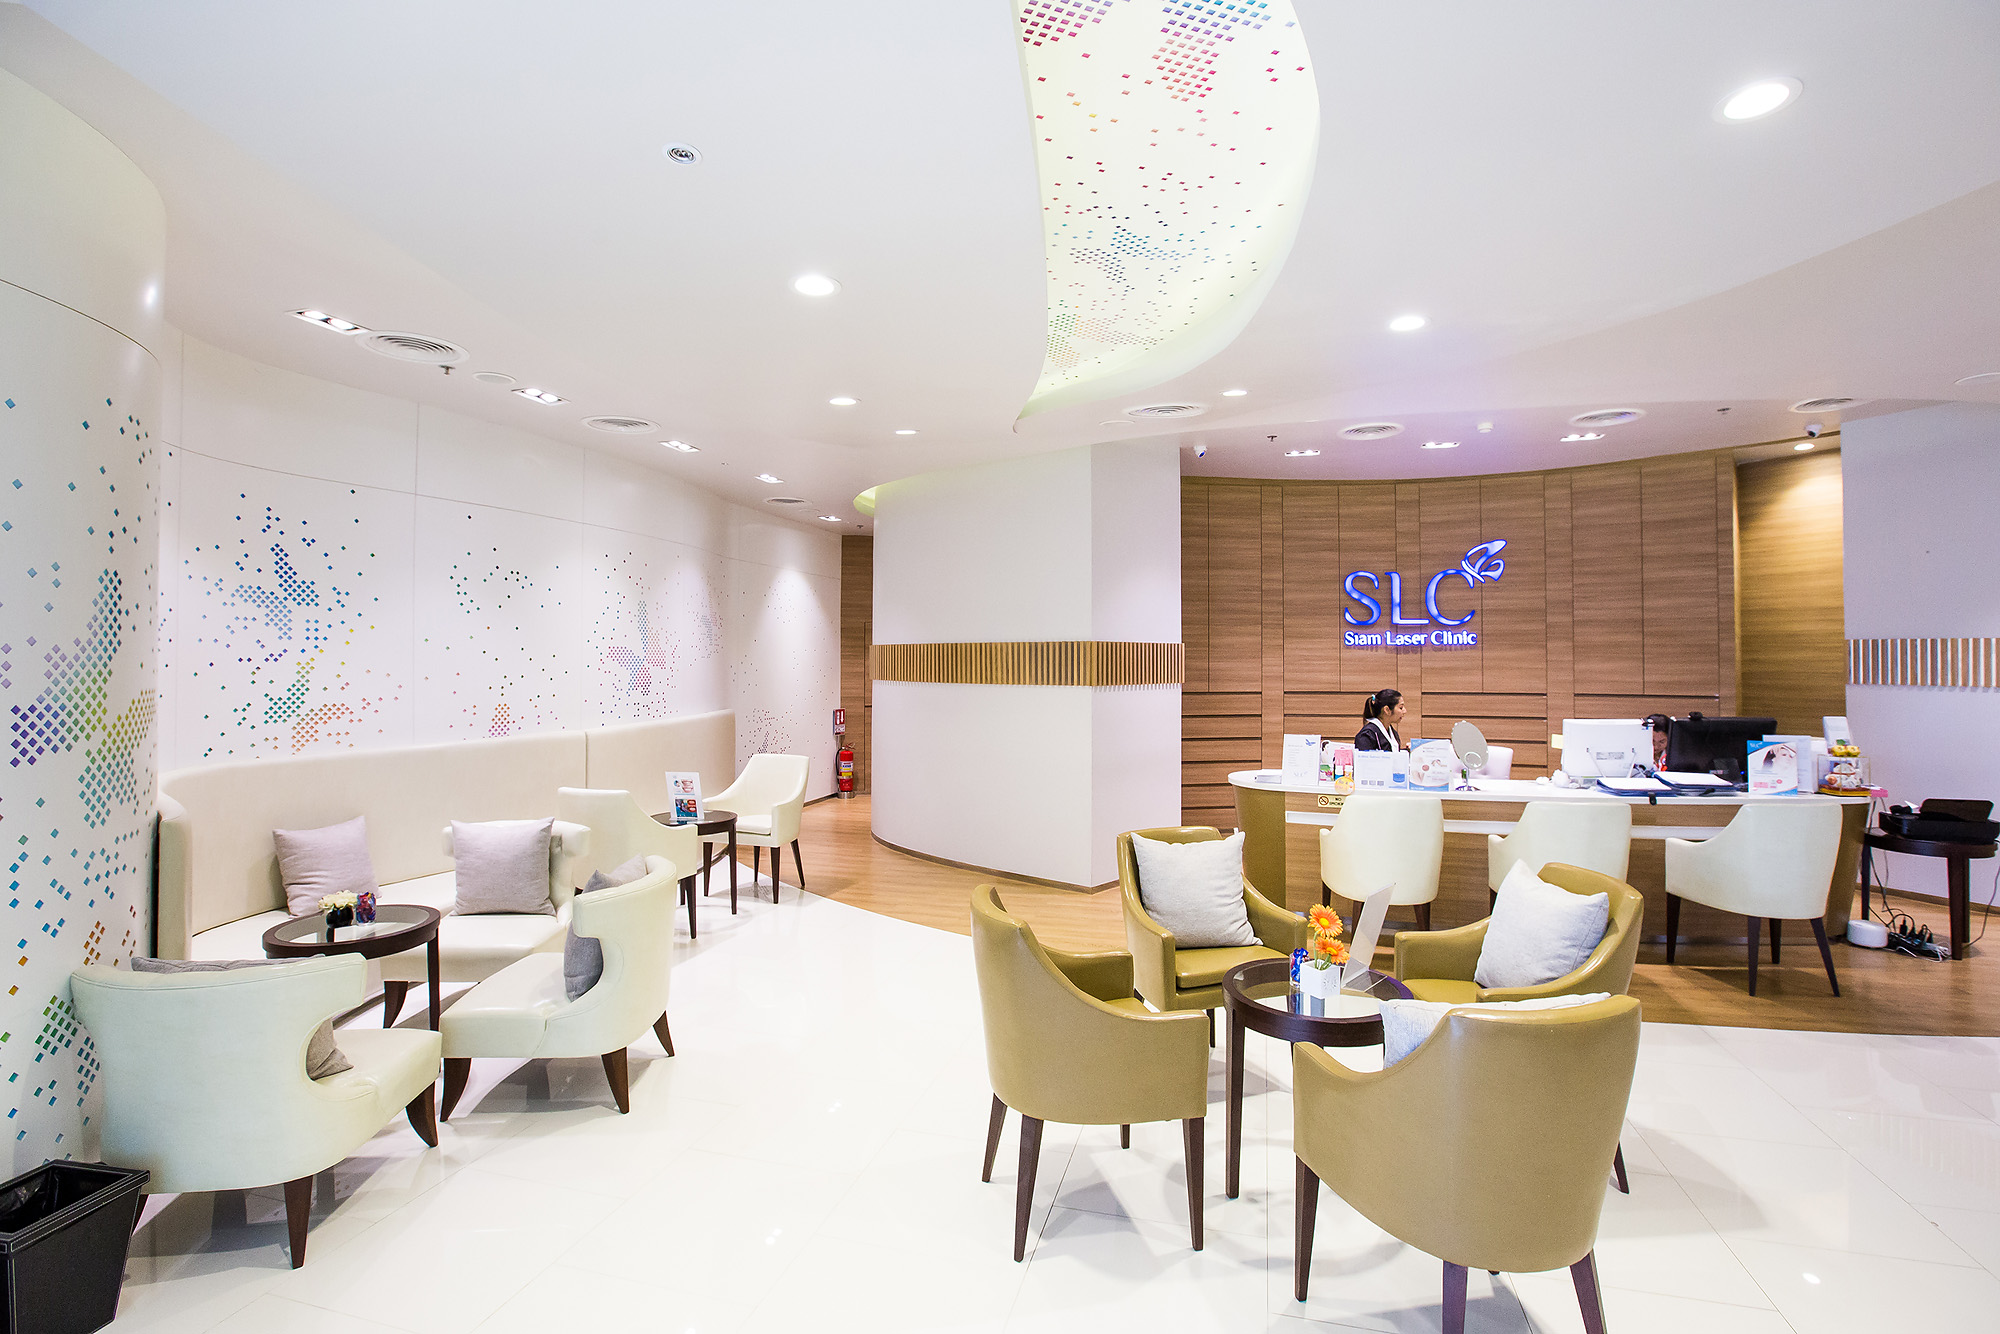 SLC - Siam Laser Clinic (Siam Square One)